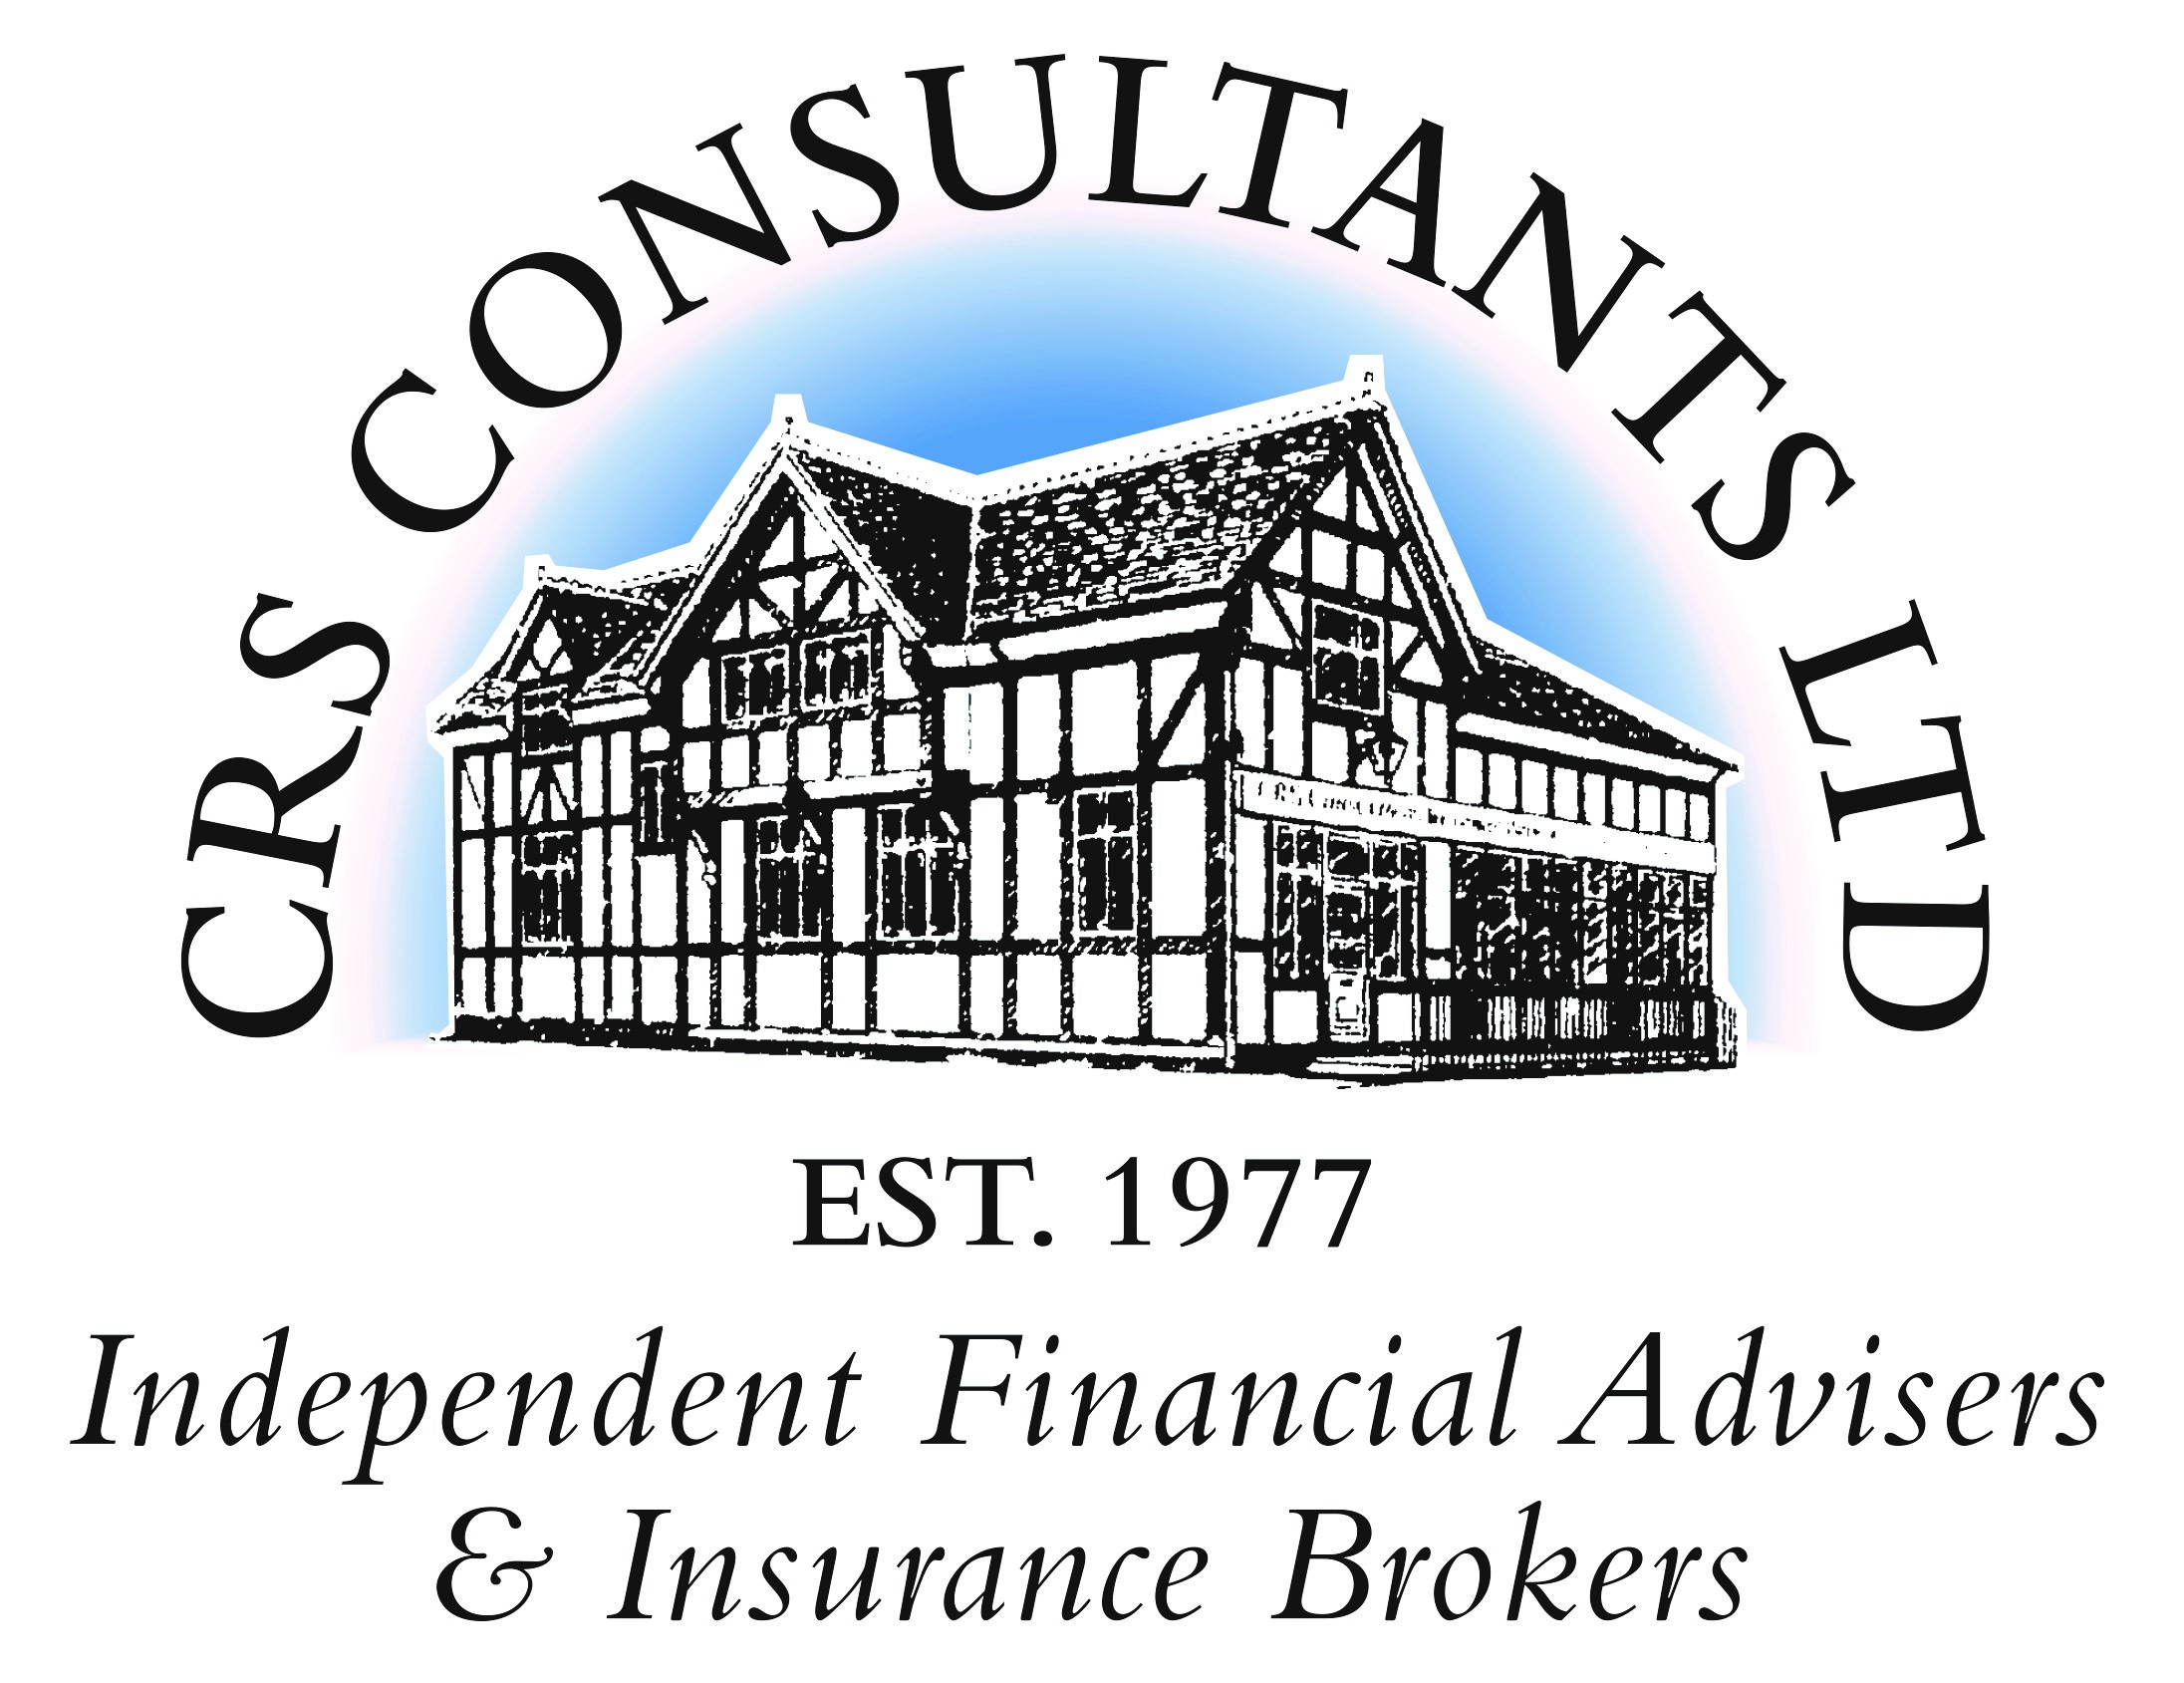 Visit http://www.crs-consultants.com/